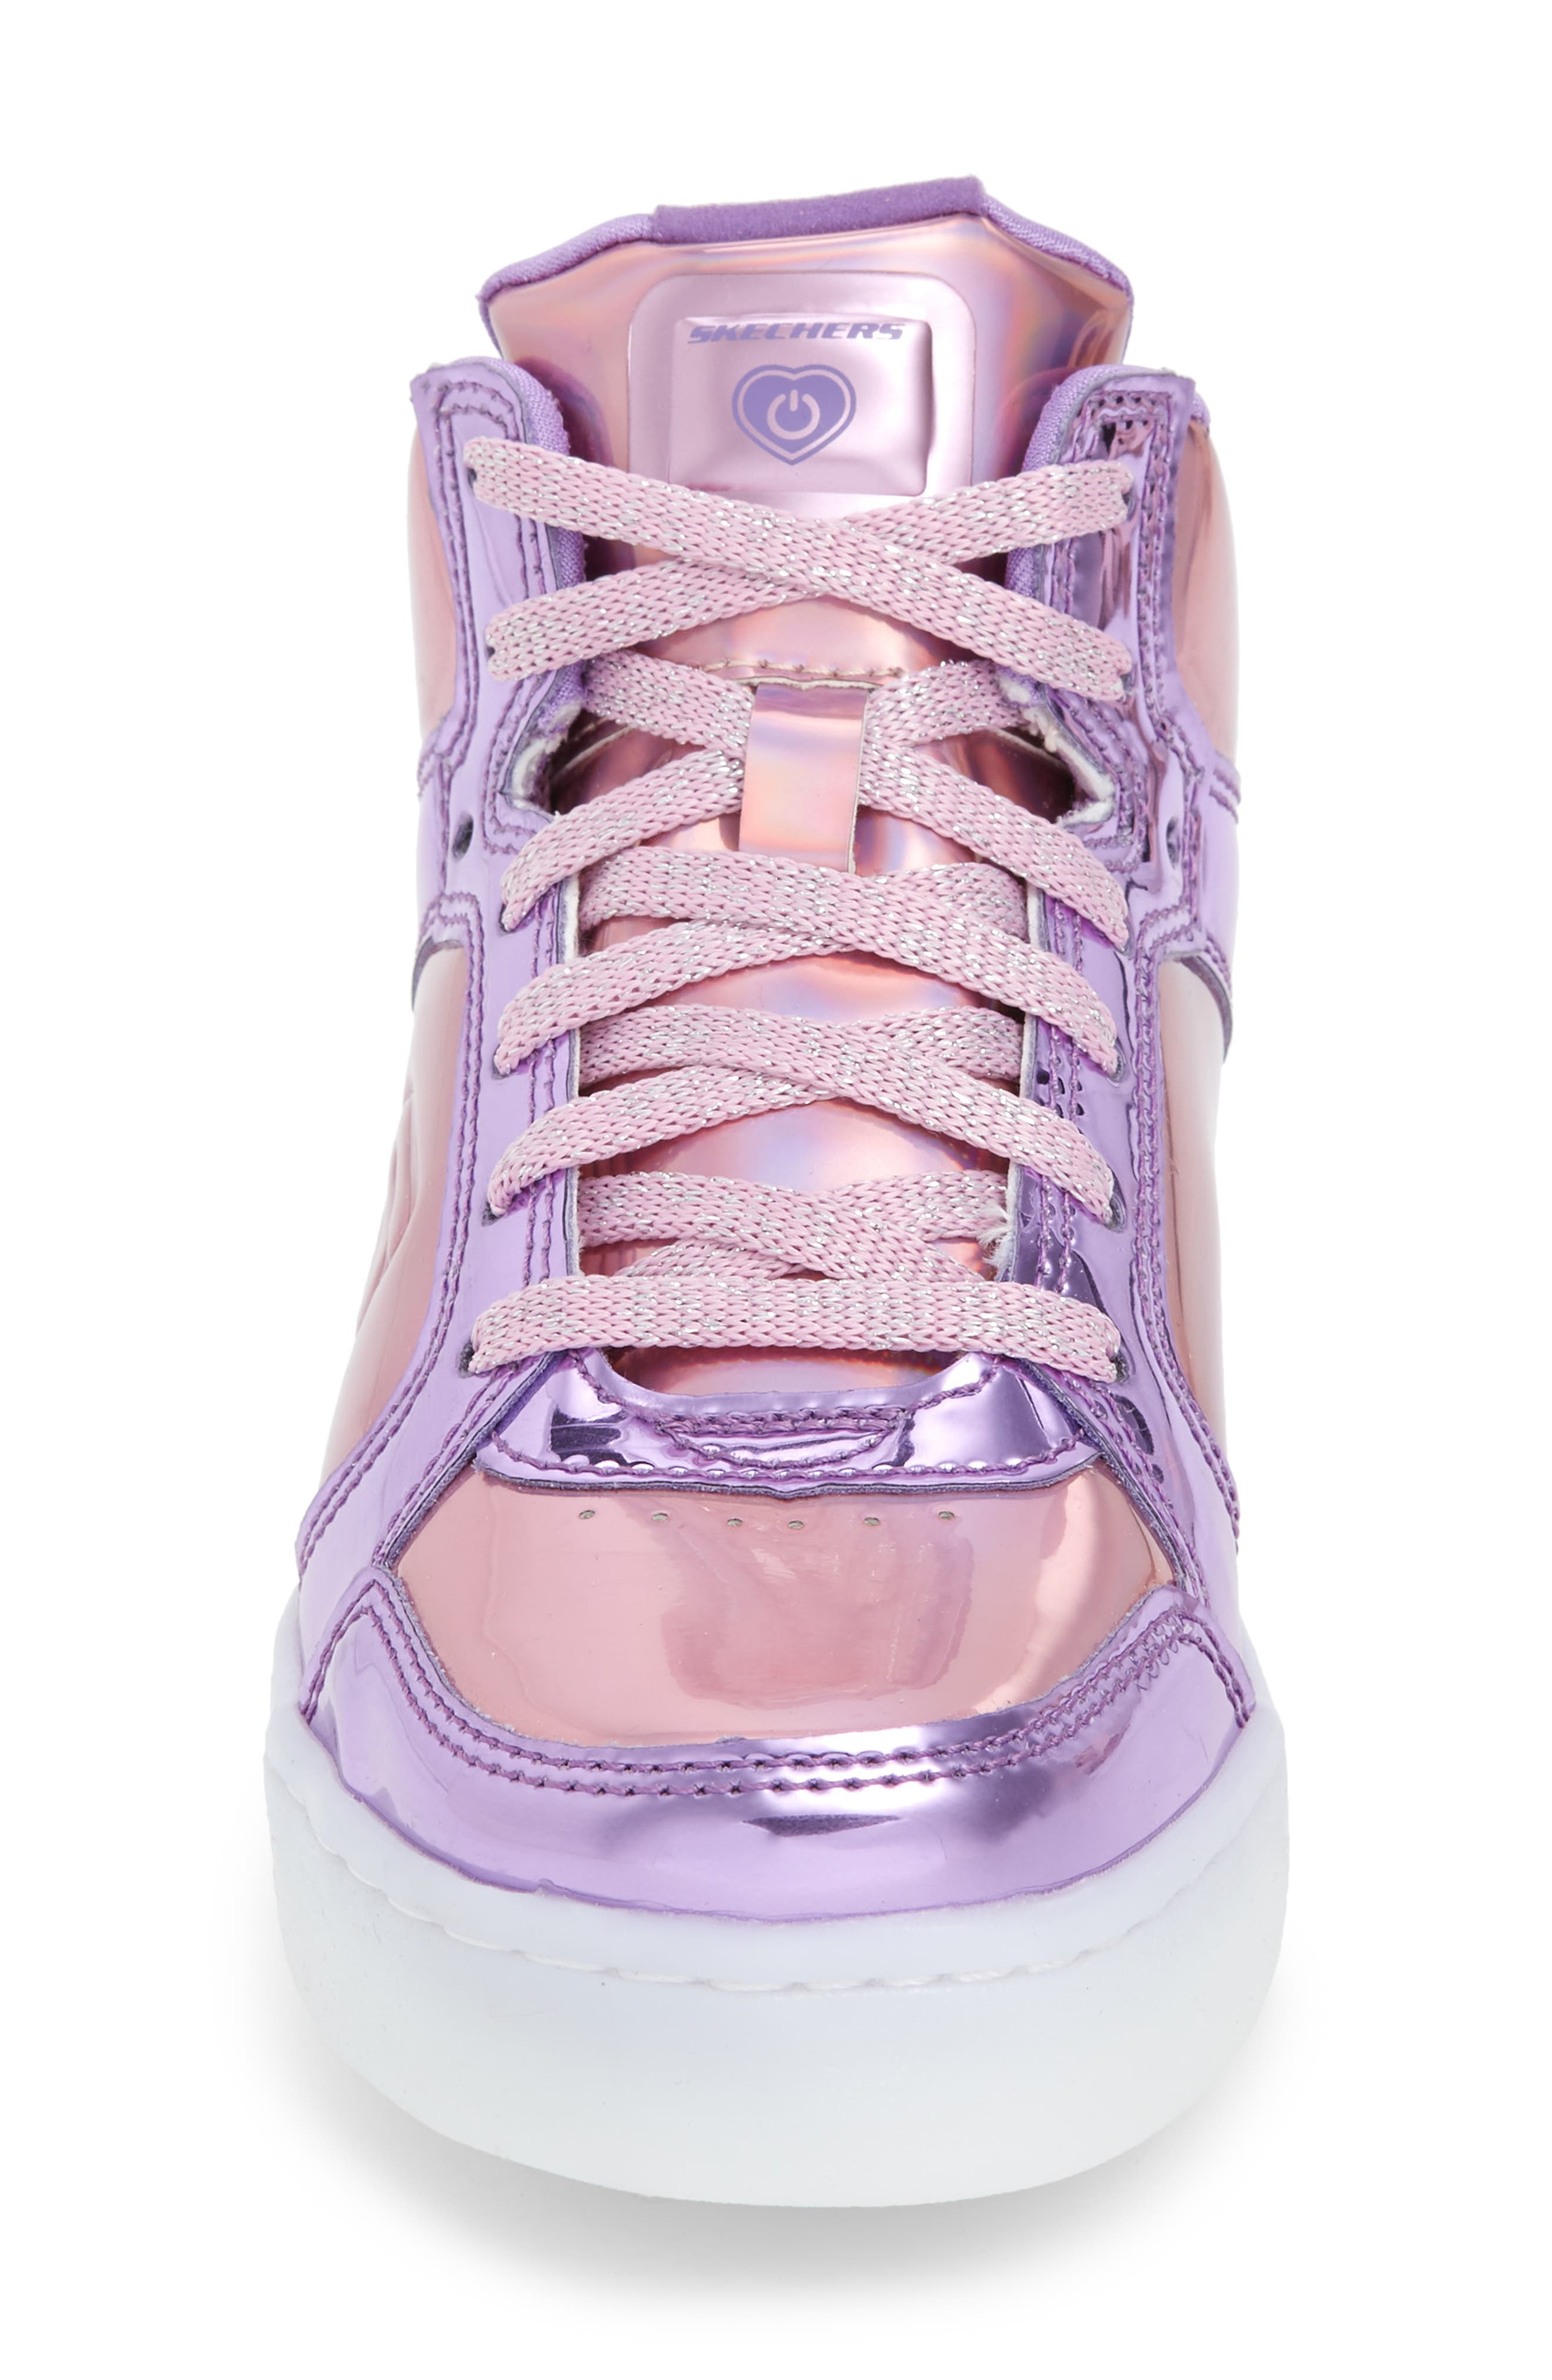 SKECHERS,                             Energy Lights Metallic High Top Sneaker,                             Alternate thumbnail 4, color,                             650